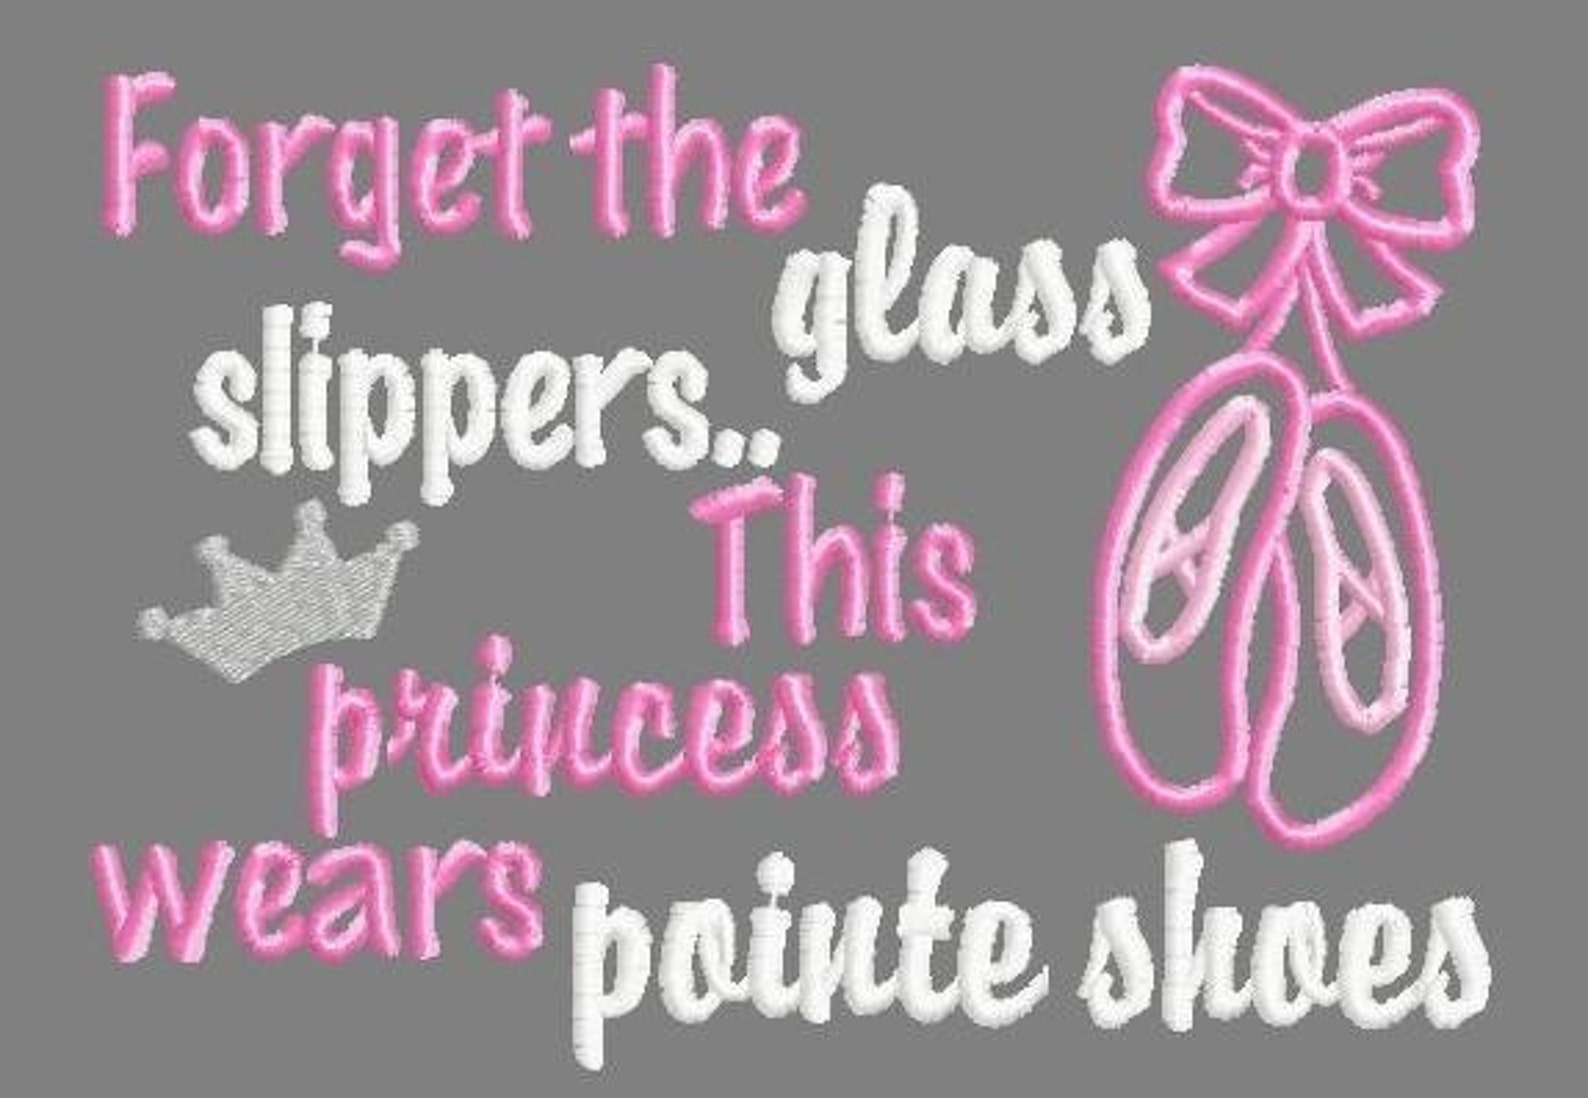 buy 3 get 1 free! forget the glass slippers.. this princess wears pointe shoes applique embroidery design, ballet, pointe, 5x7 4